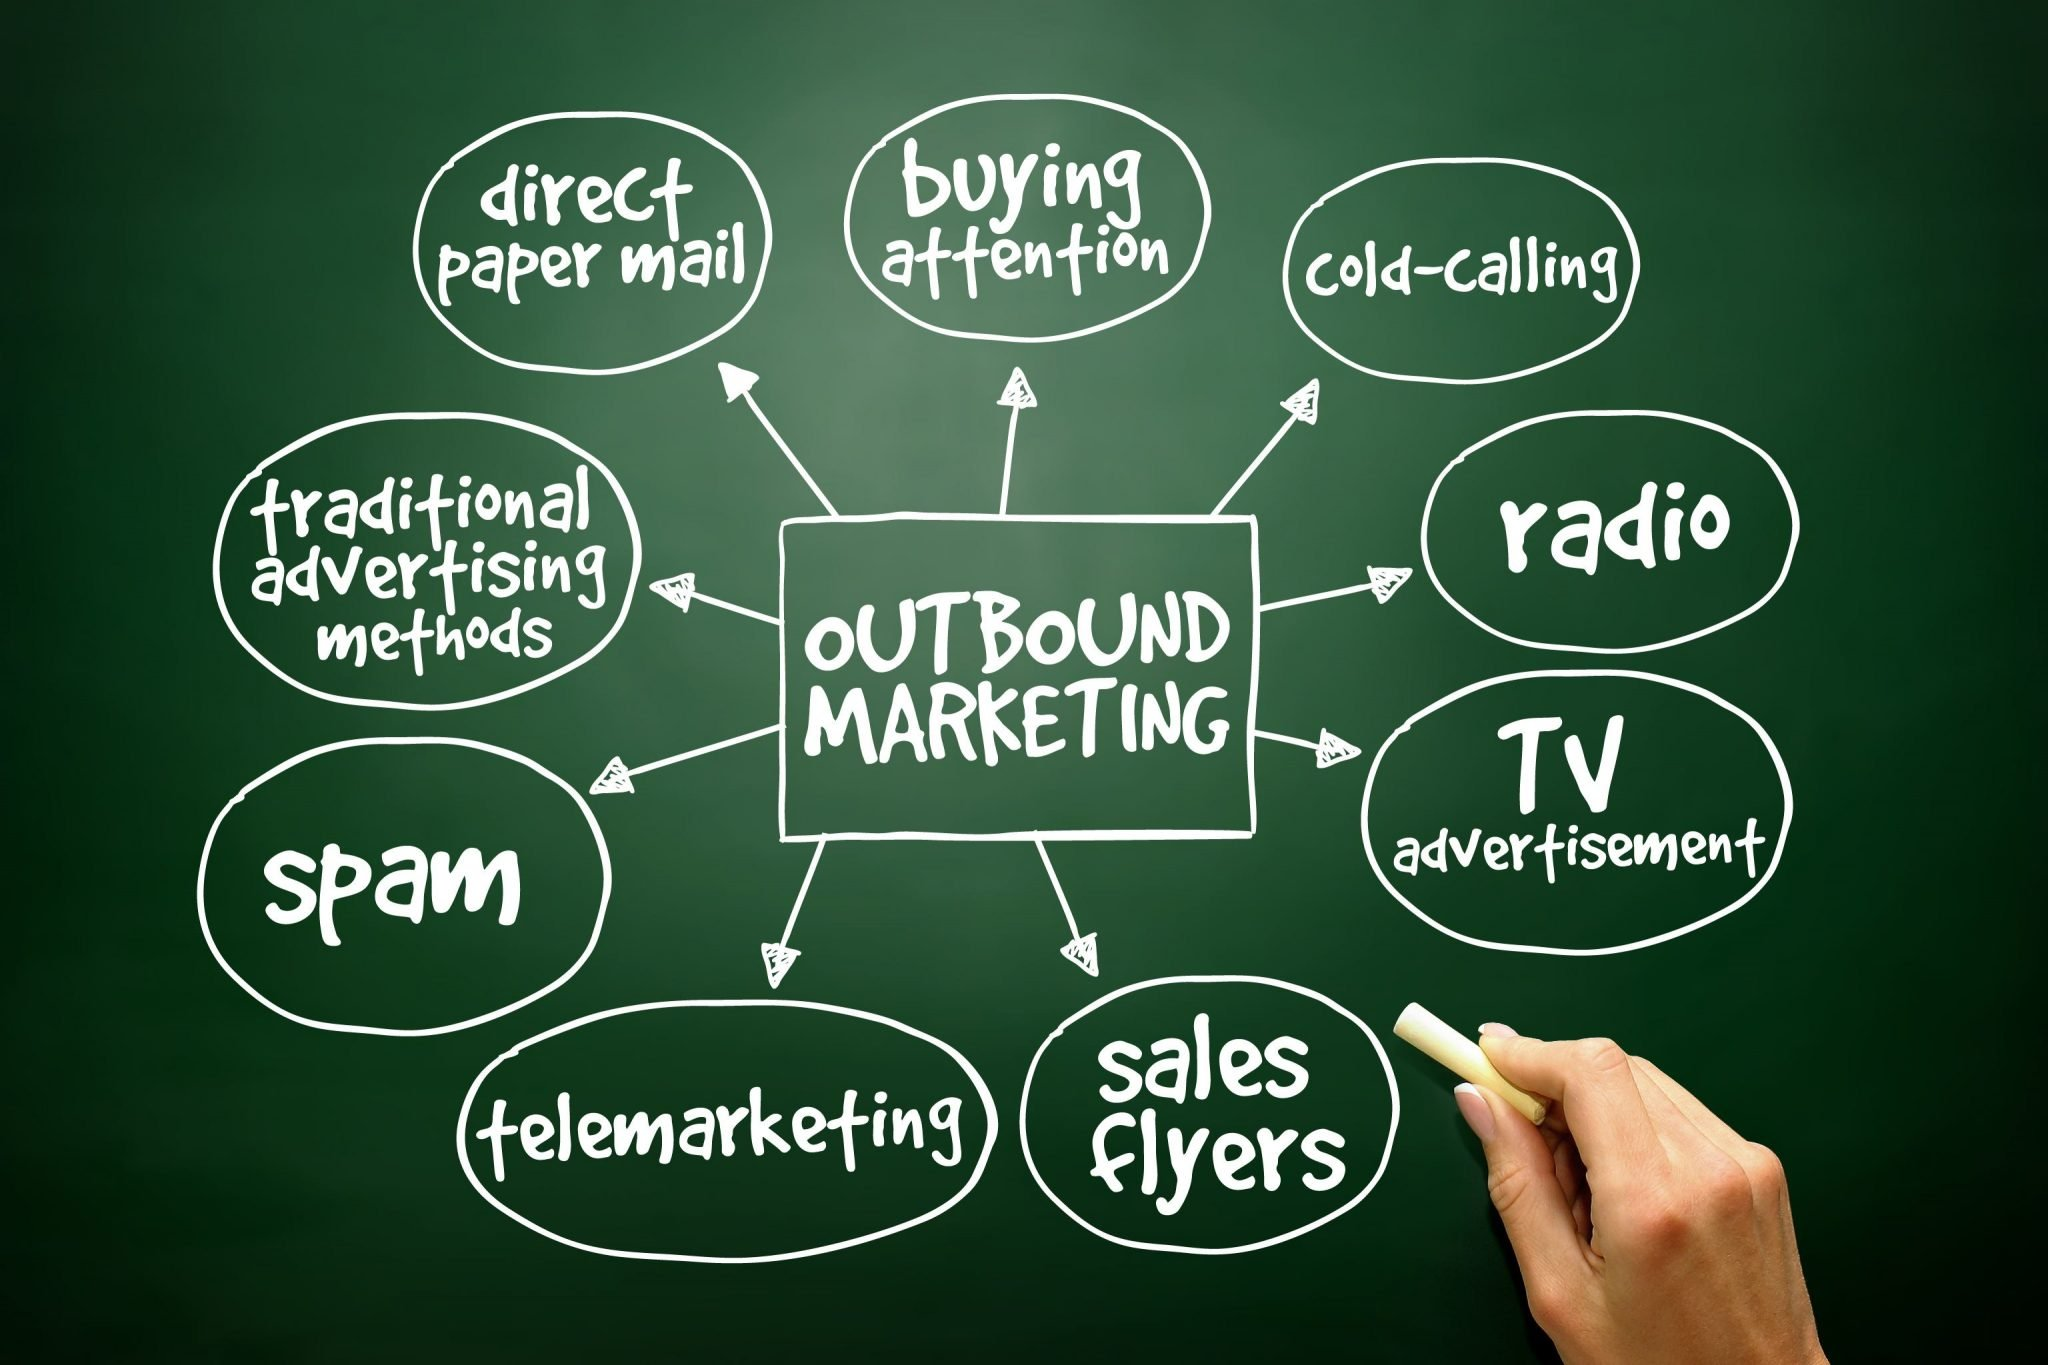 Outbound-marketing-o-que-e-e-como-faz-minhas-vendas-multiplicarem